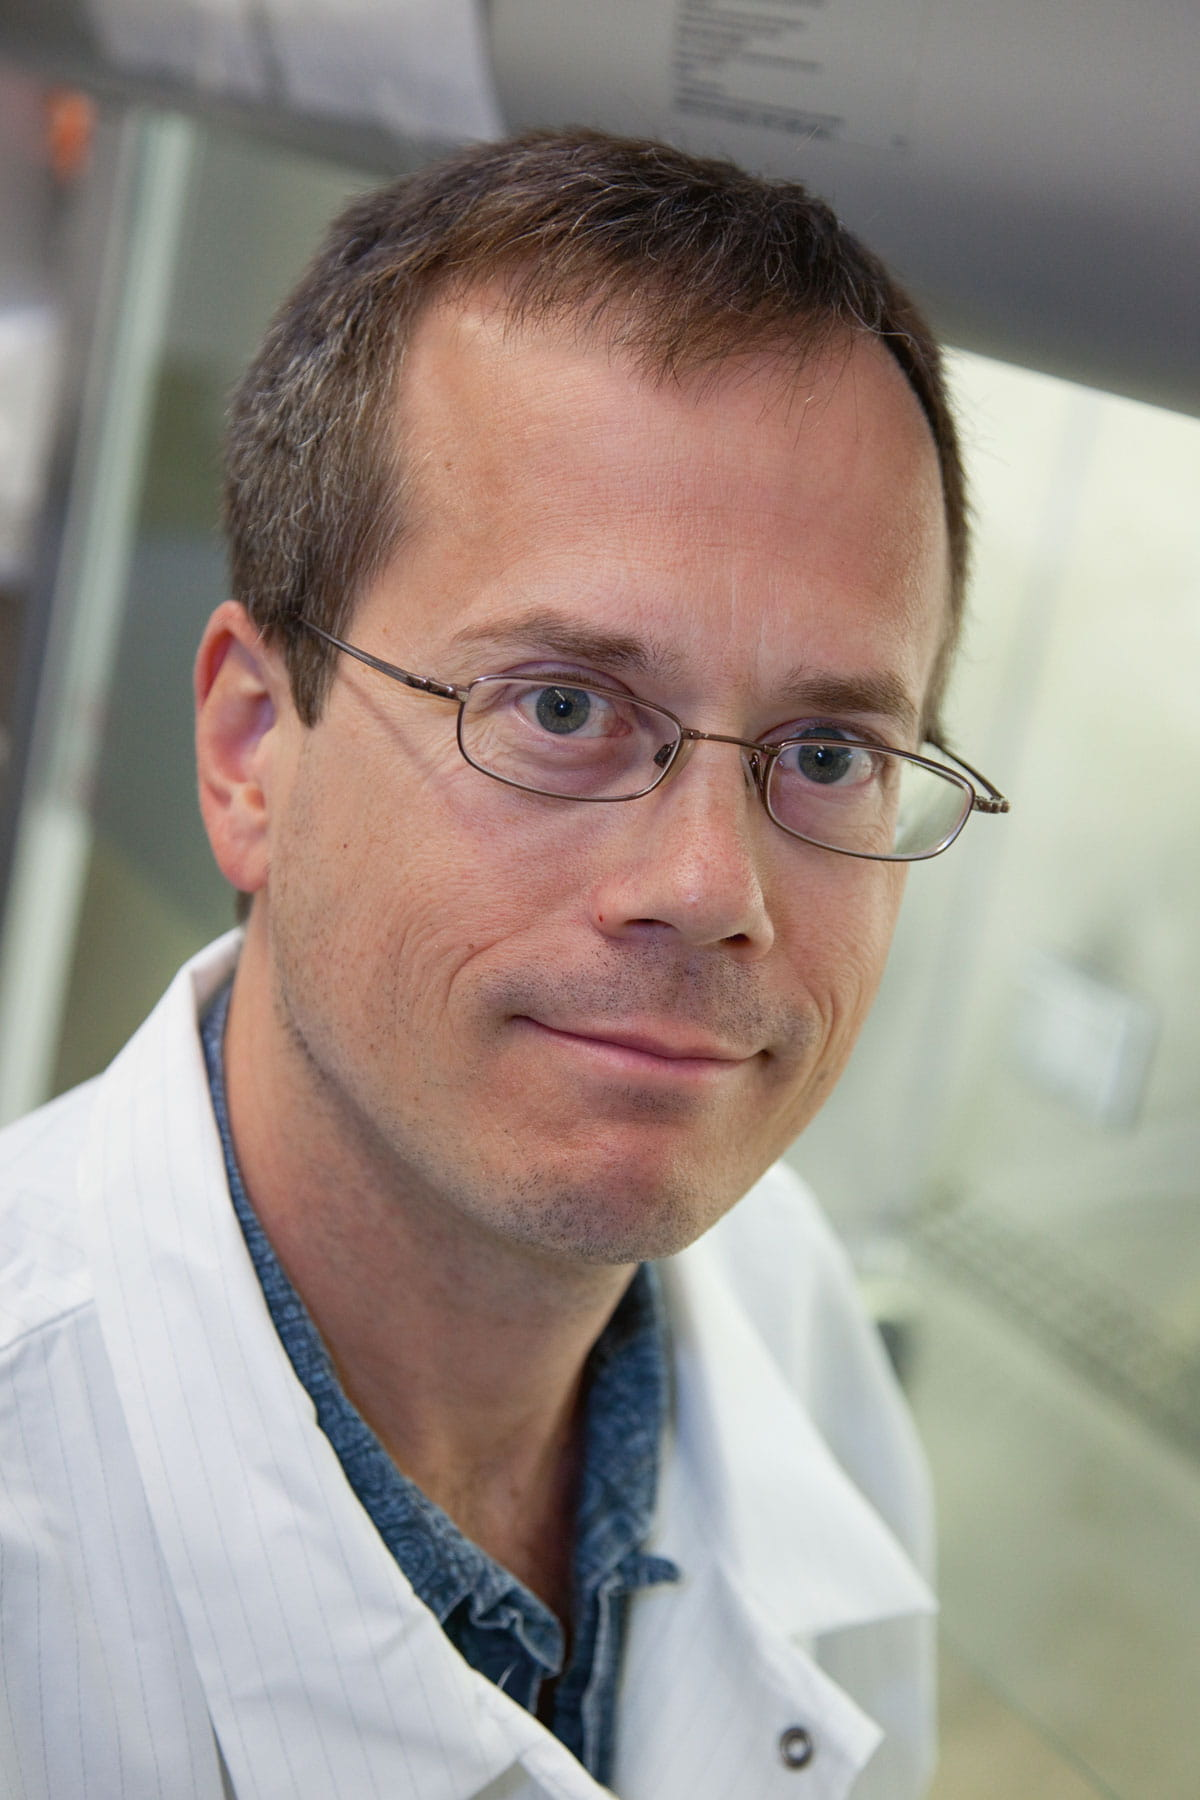 A photo of James Wells, PhD.